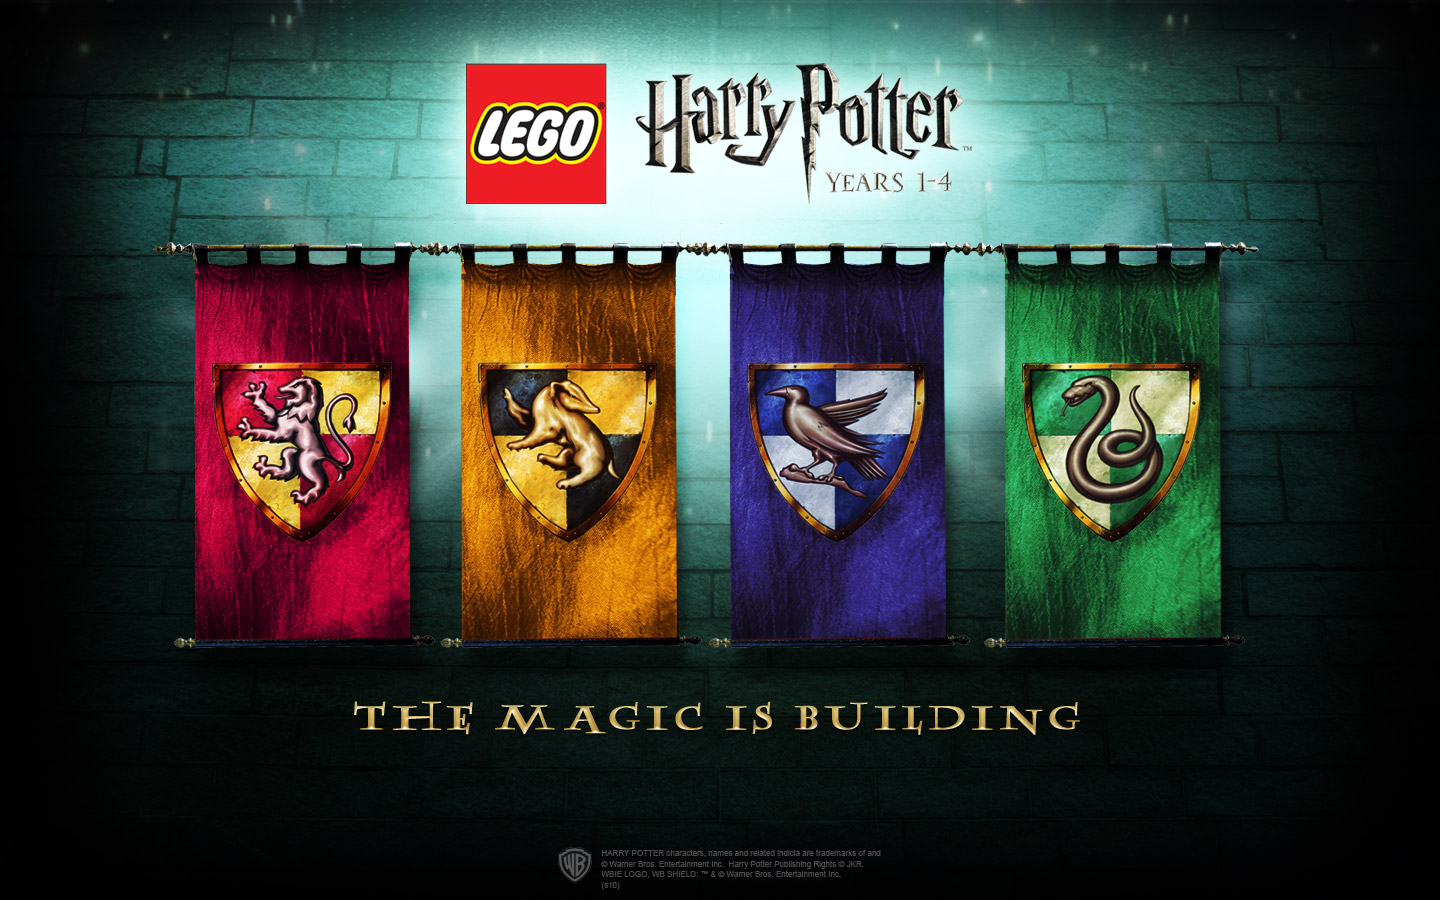 Lego harry potter years 1-4 pc download.